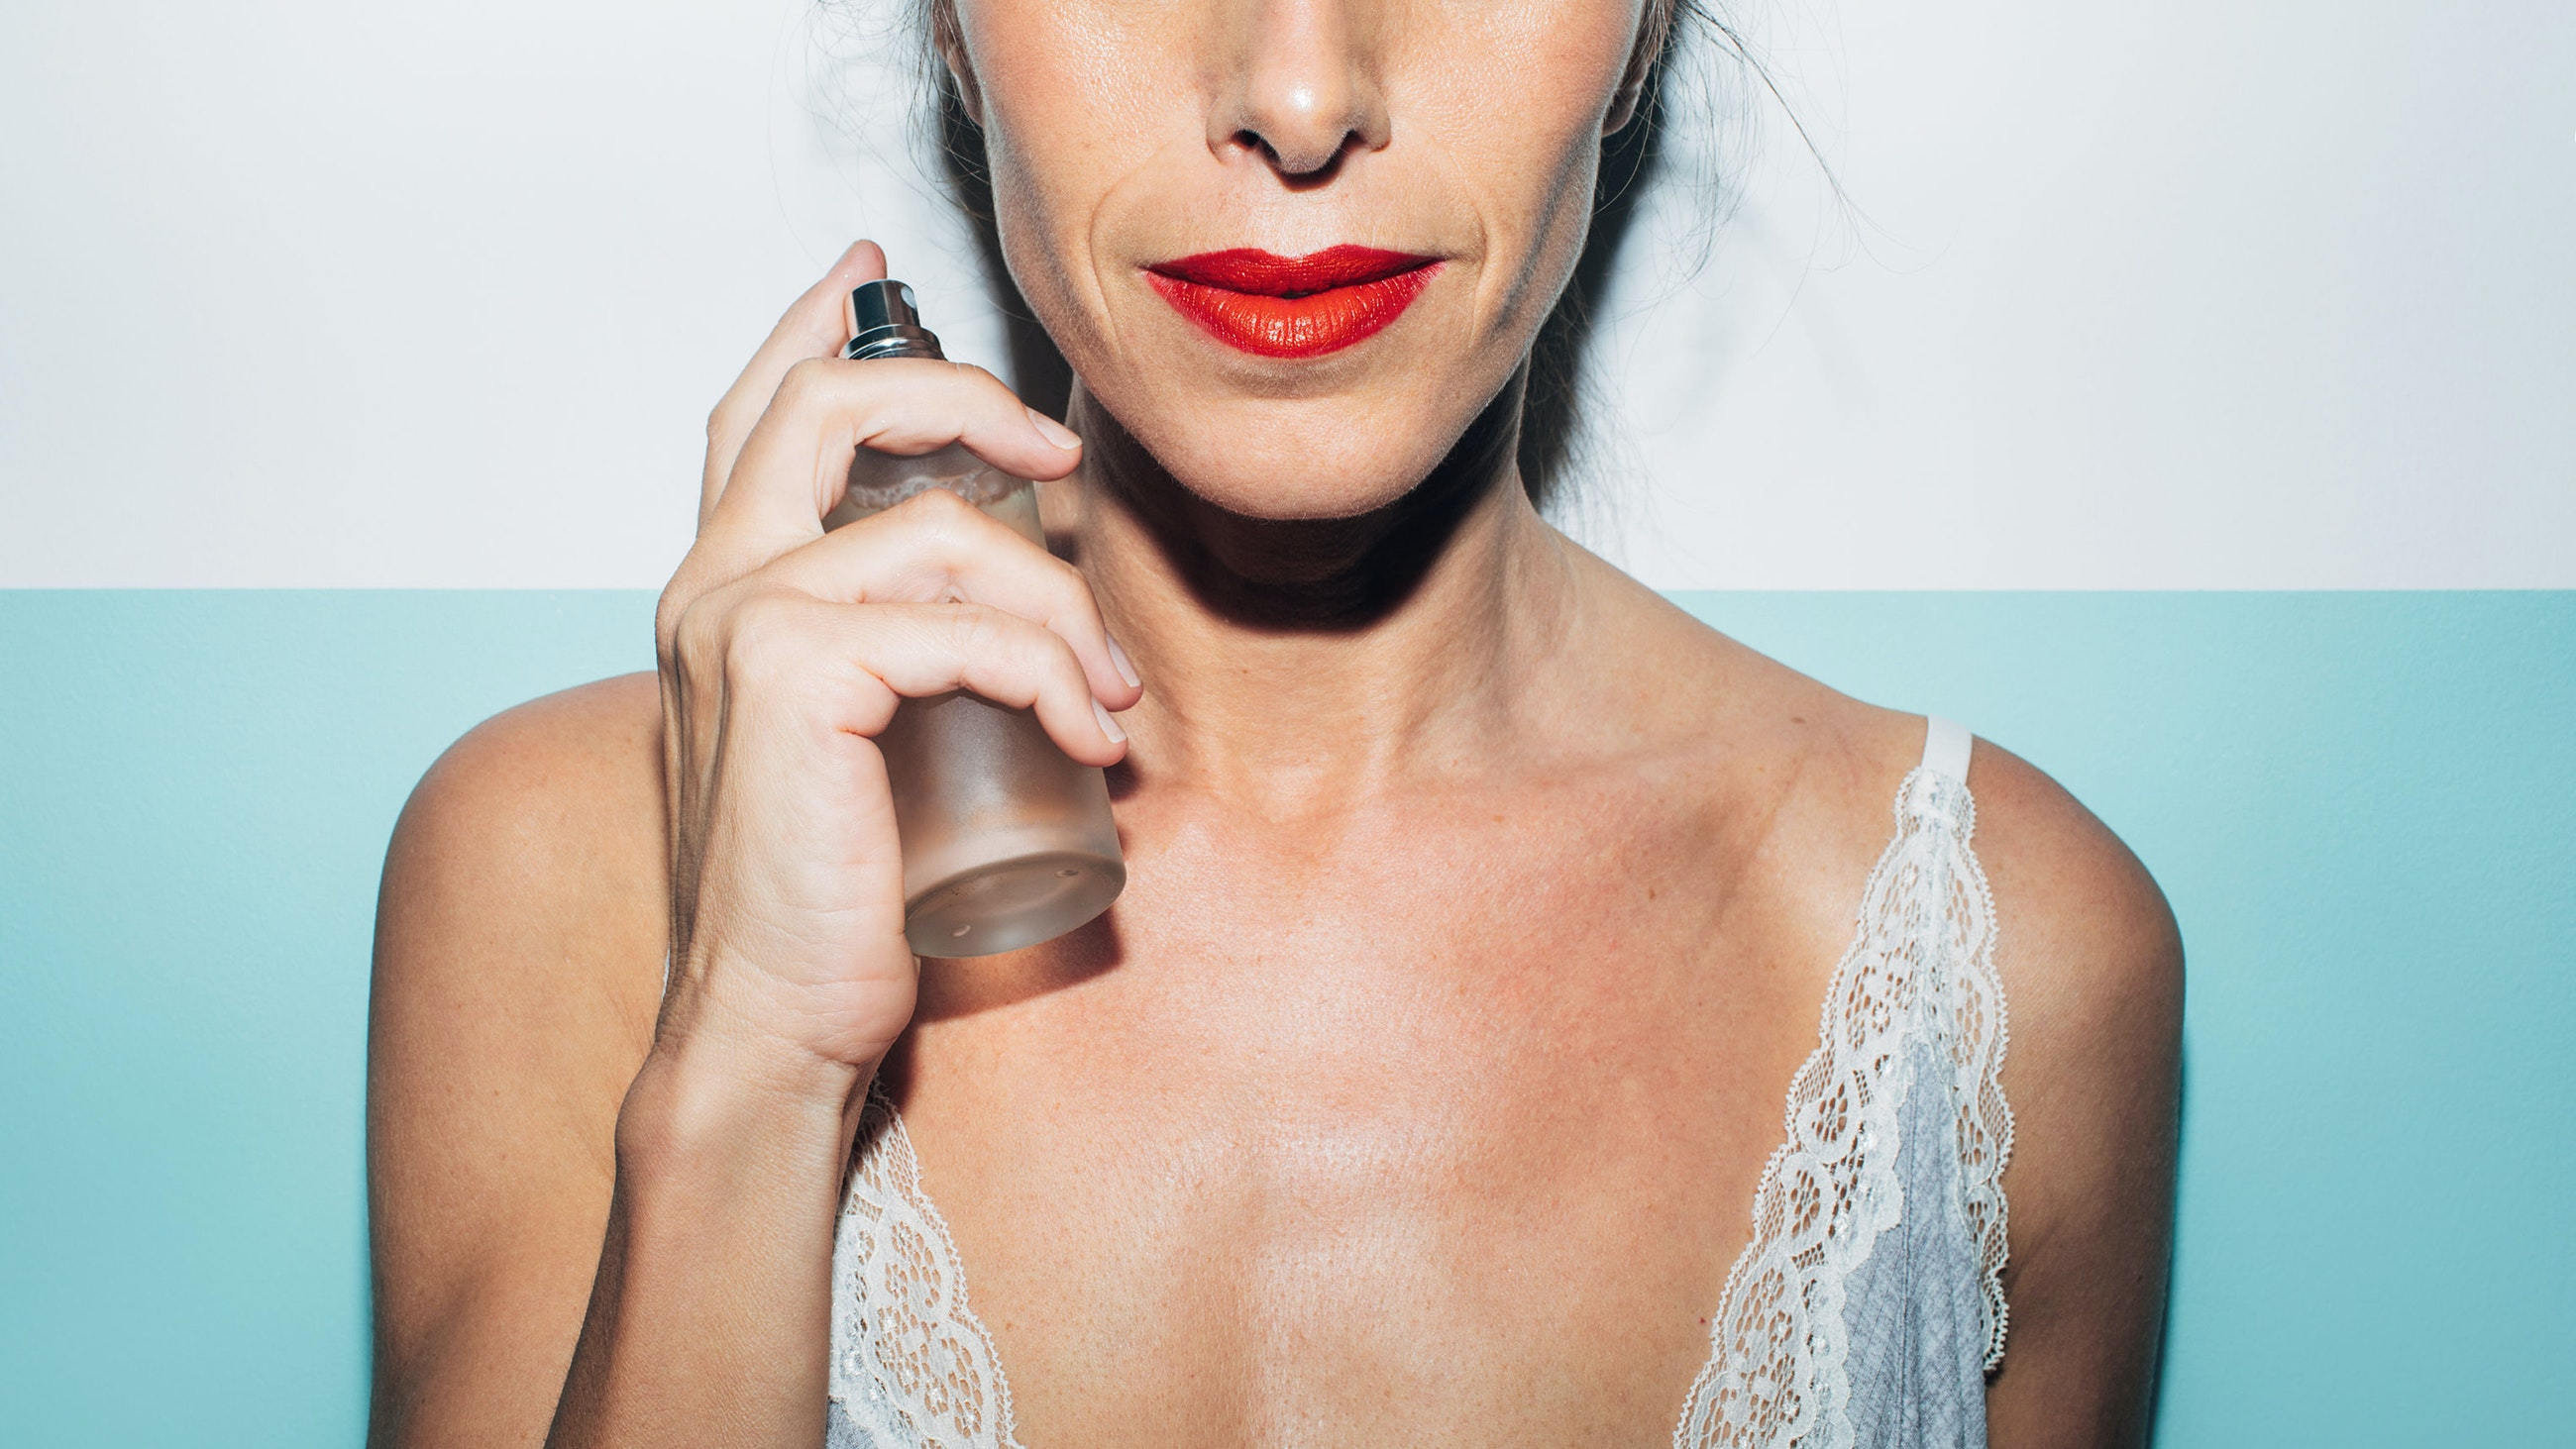 Portrait of an attractive woman in her fifties applying some perfume to her skin